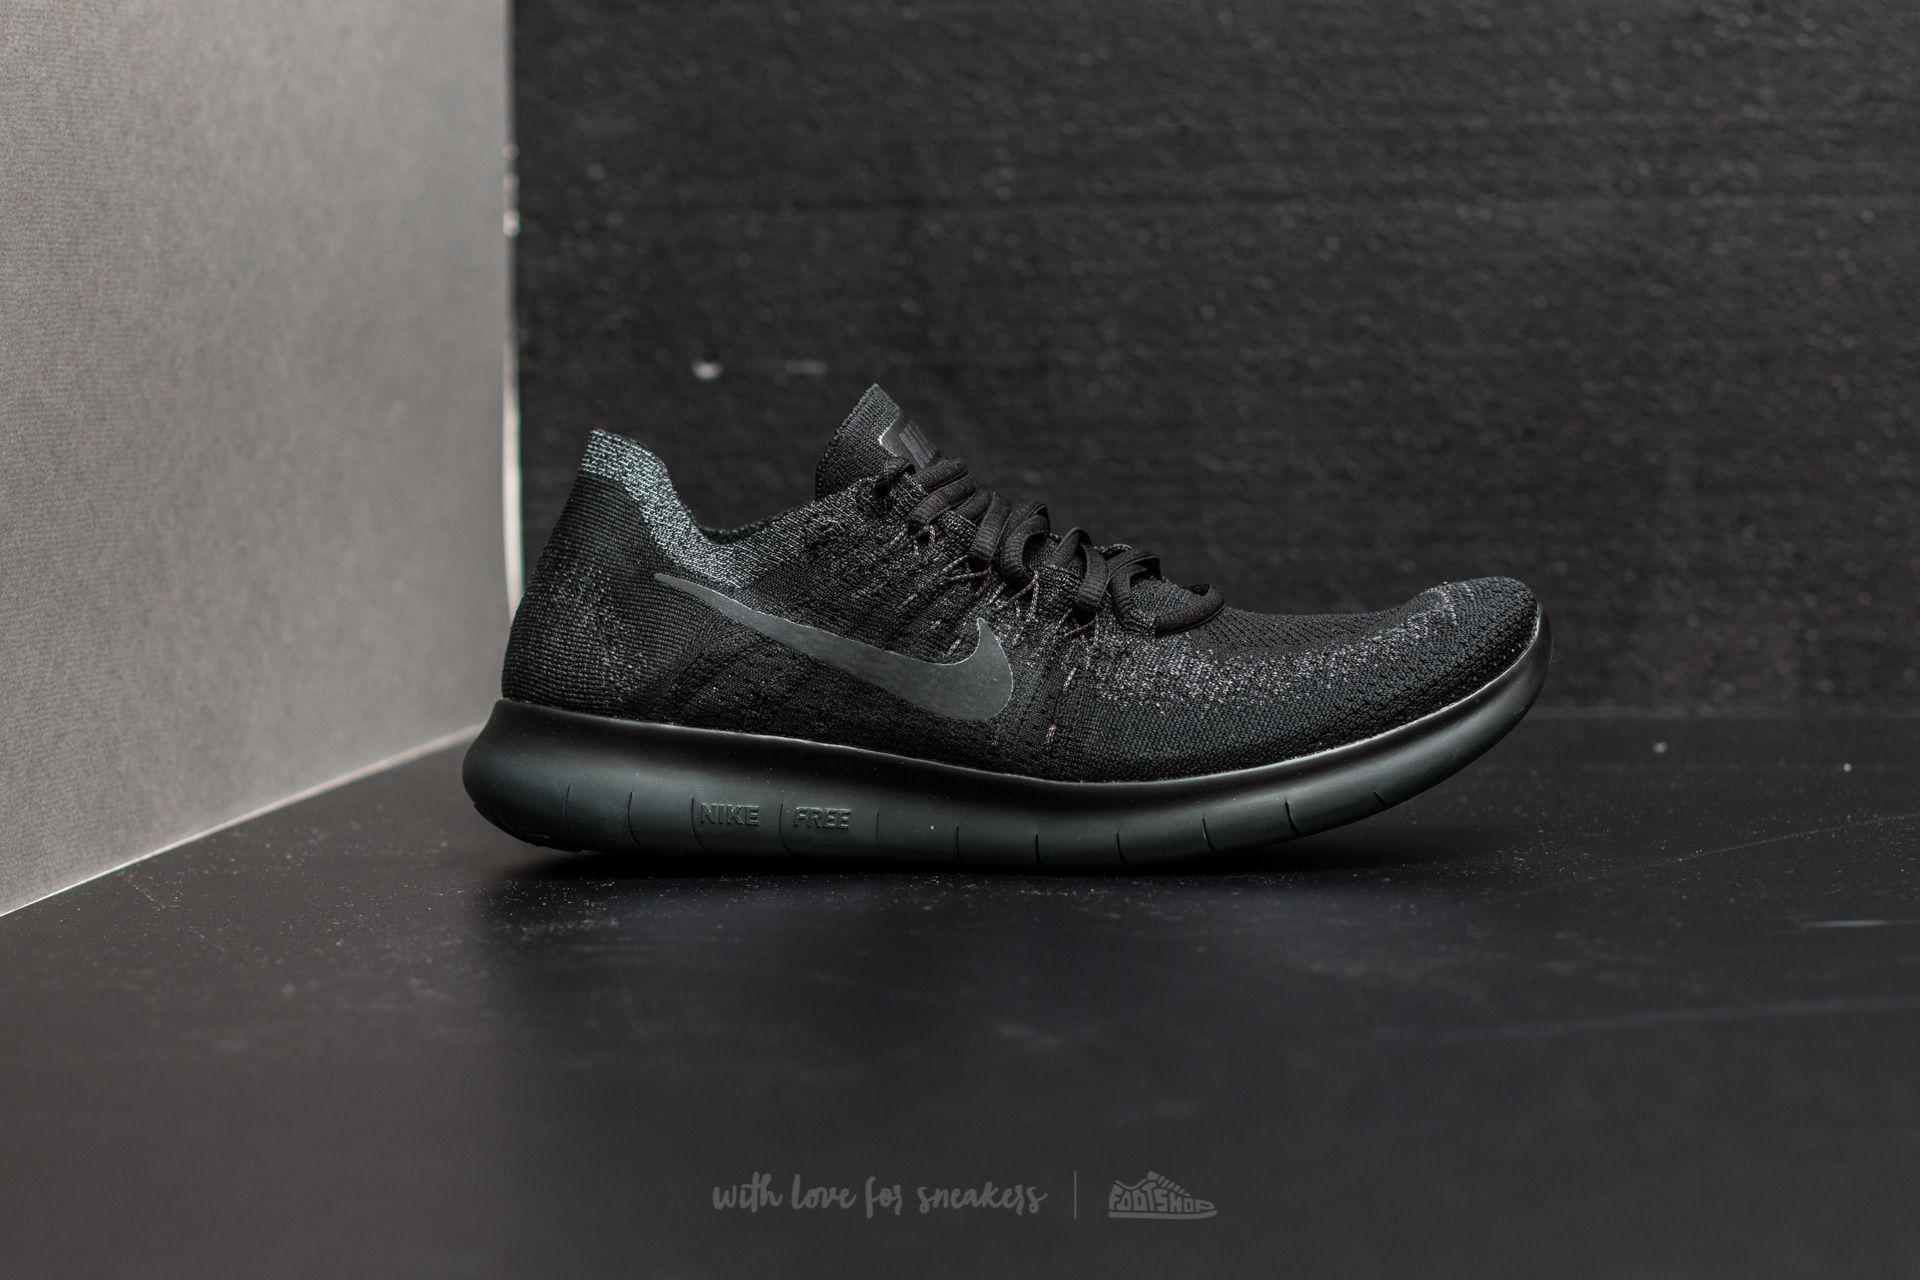 premium selection 04f6d 16459 Nike Free Run Flyknit 2017 Black  Anthracite-anthracite in Black for ...